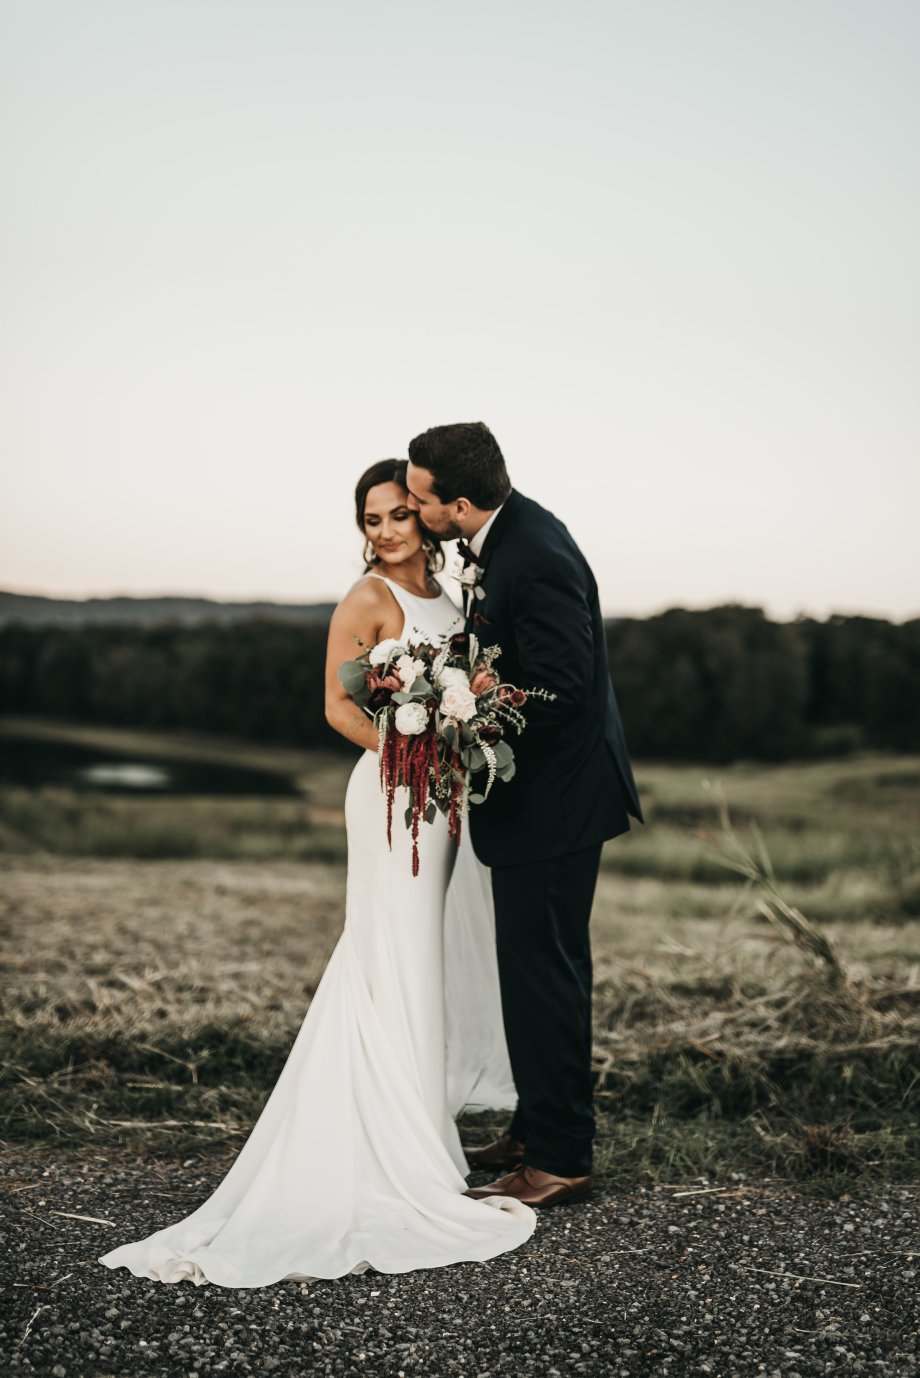 Burgundy_Fall_wedding_flowers_Lang_Floral_Designs_Chattanooga_Howe_Farms_859